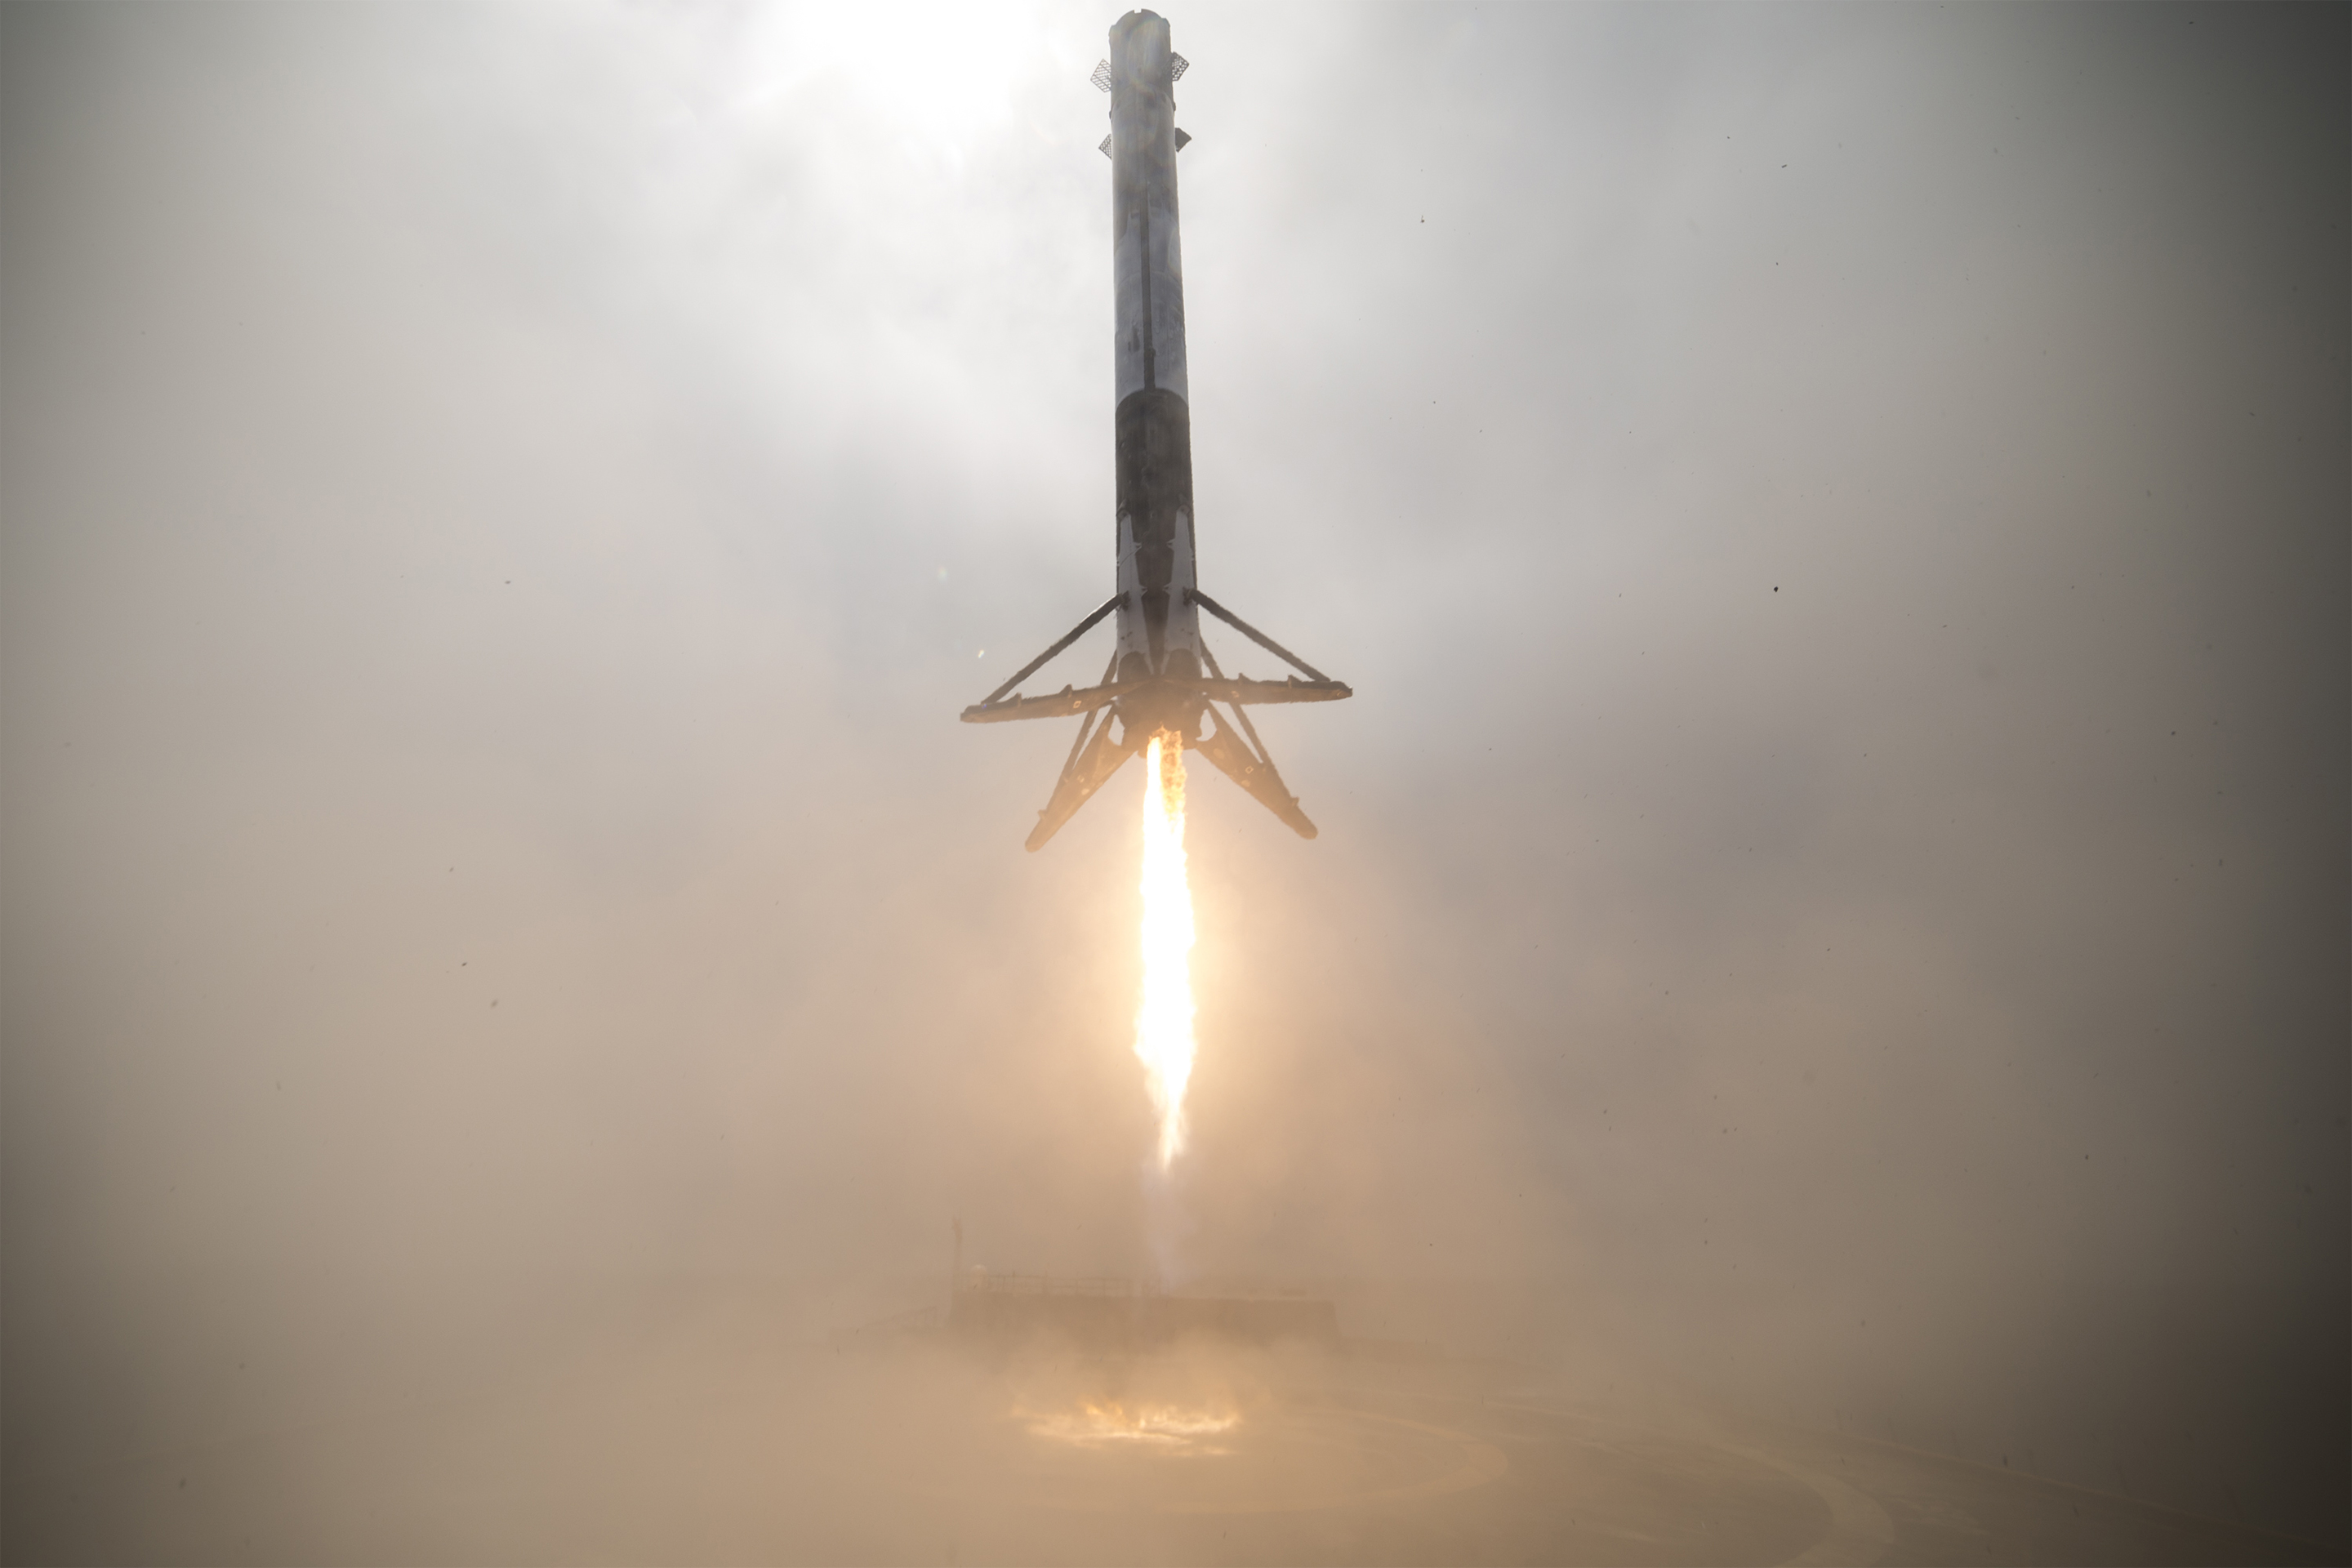 -spacex